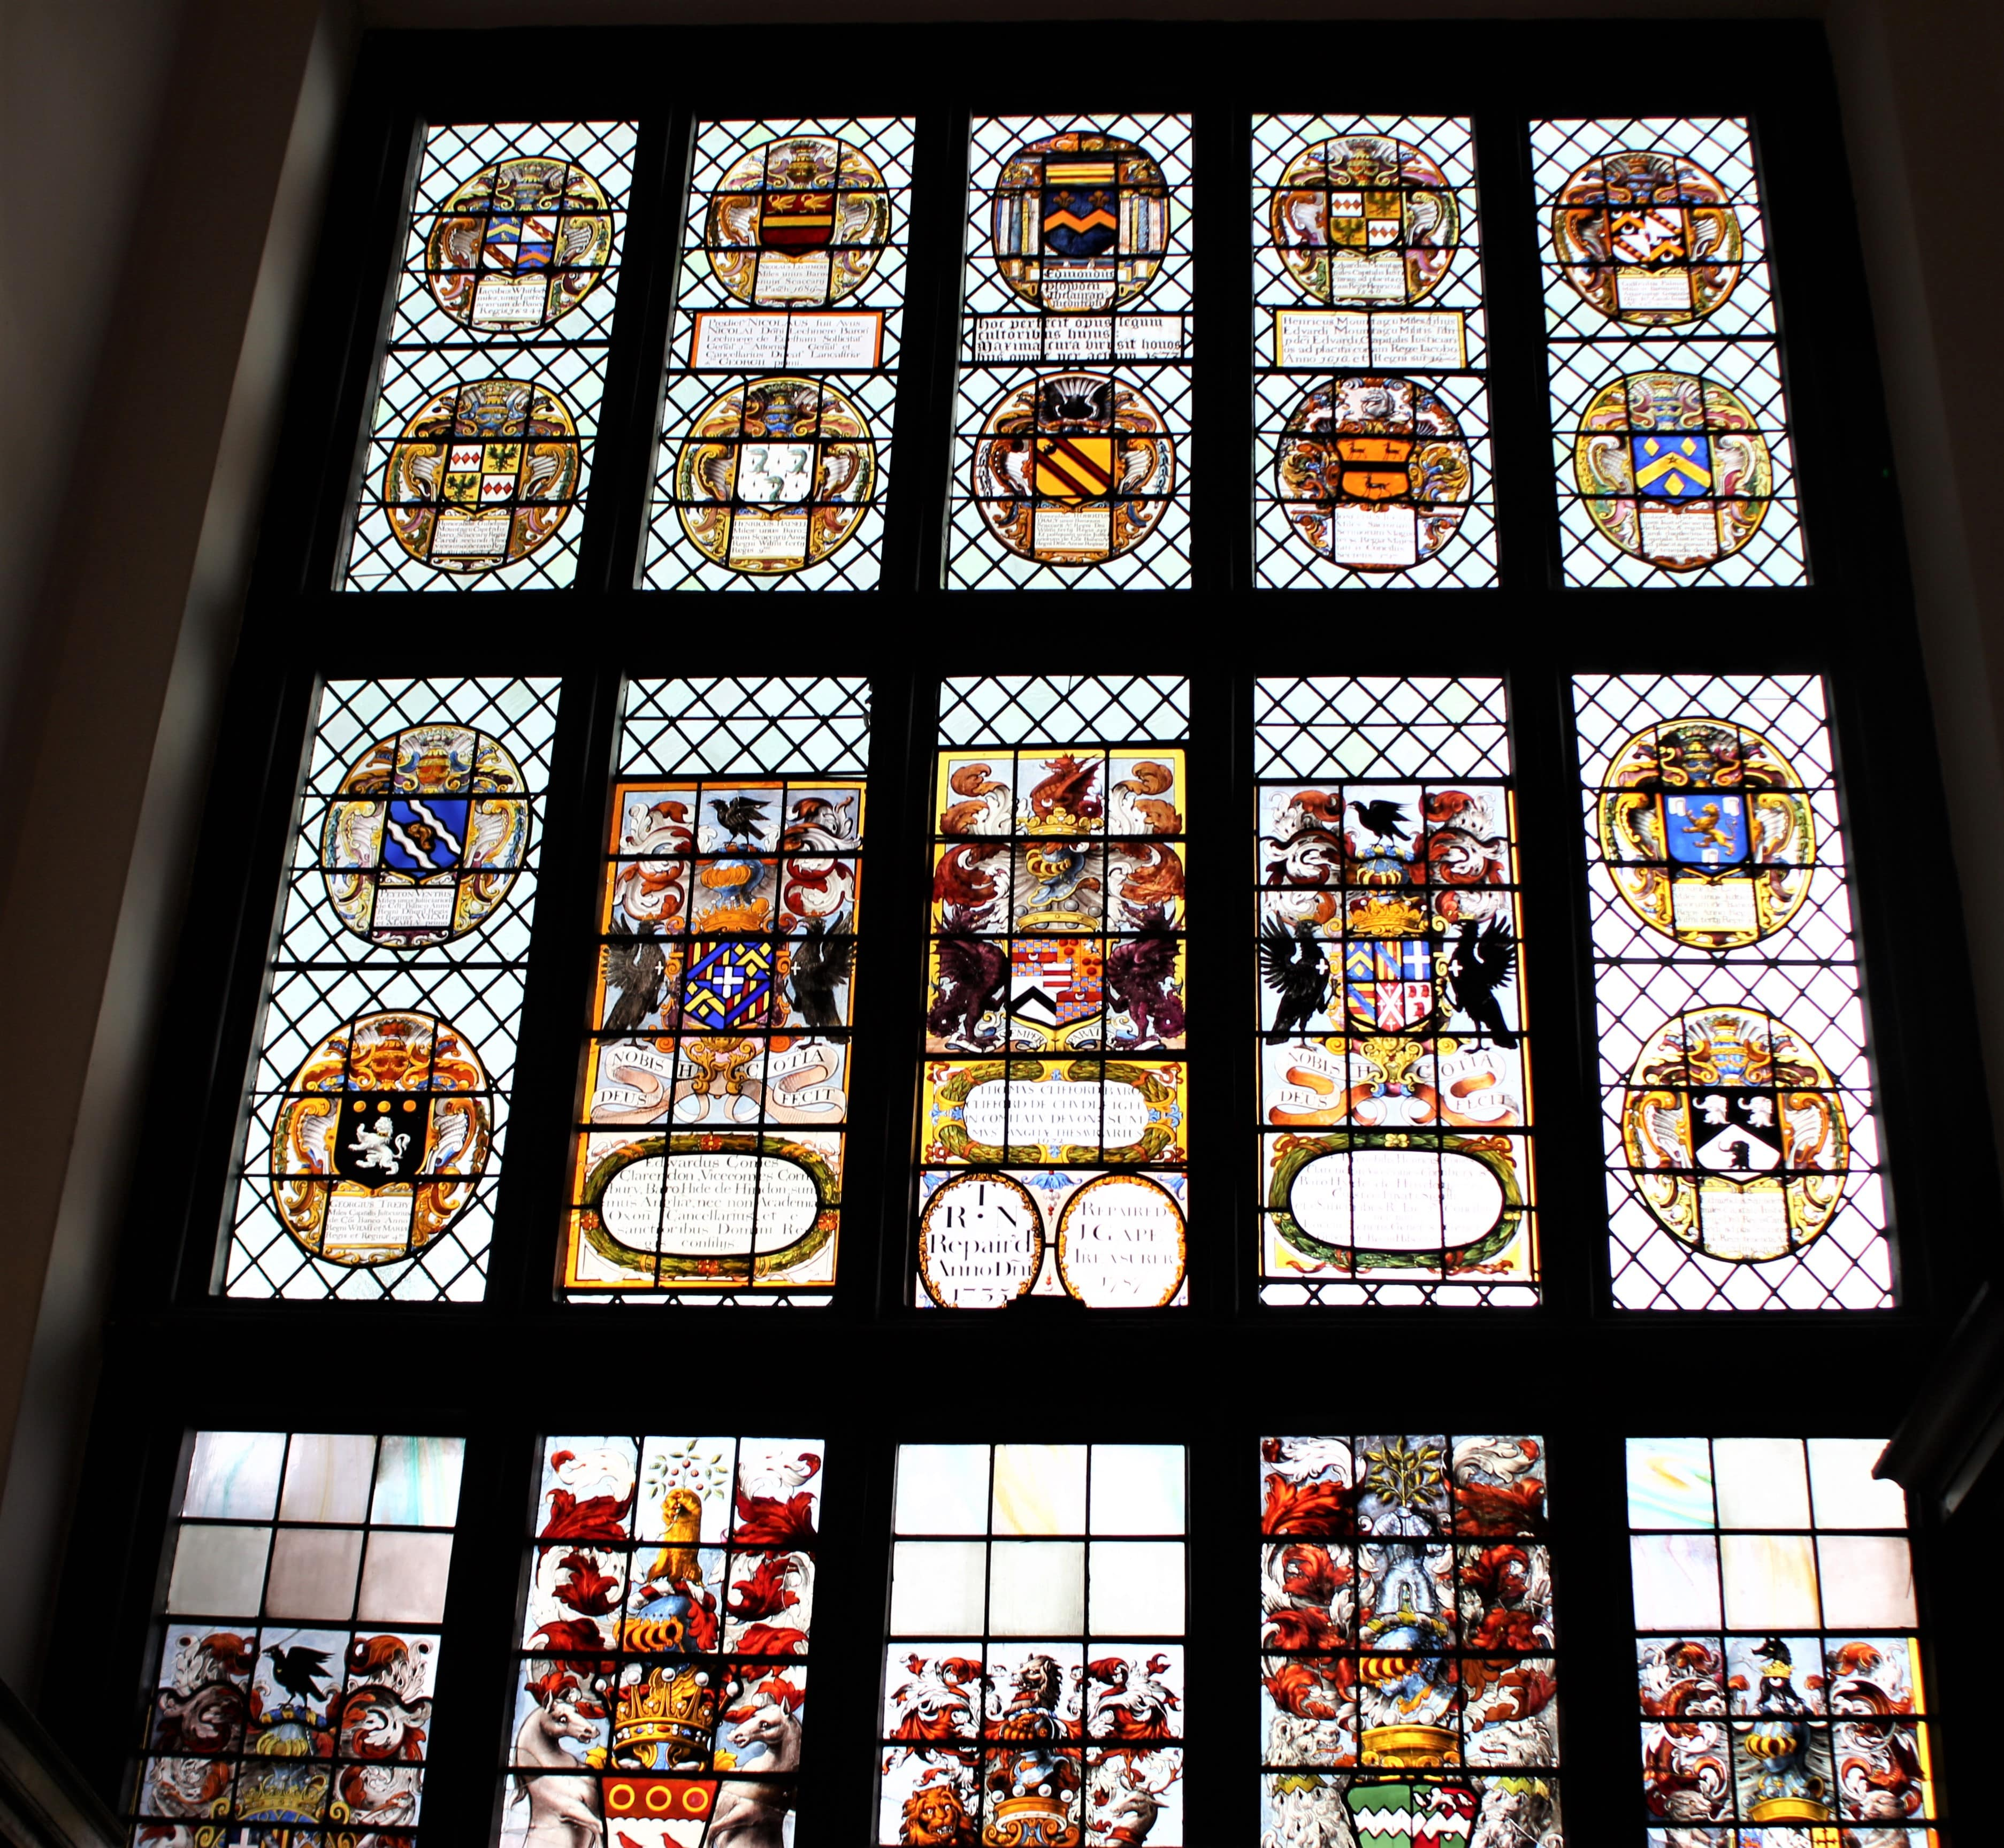 Middle Temple Hall windows